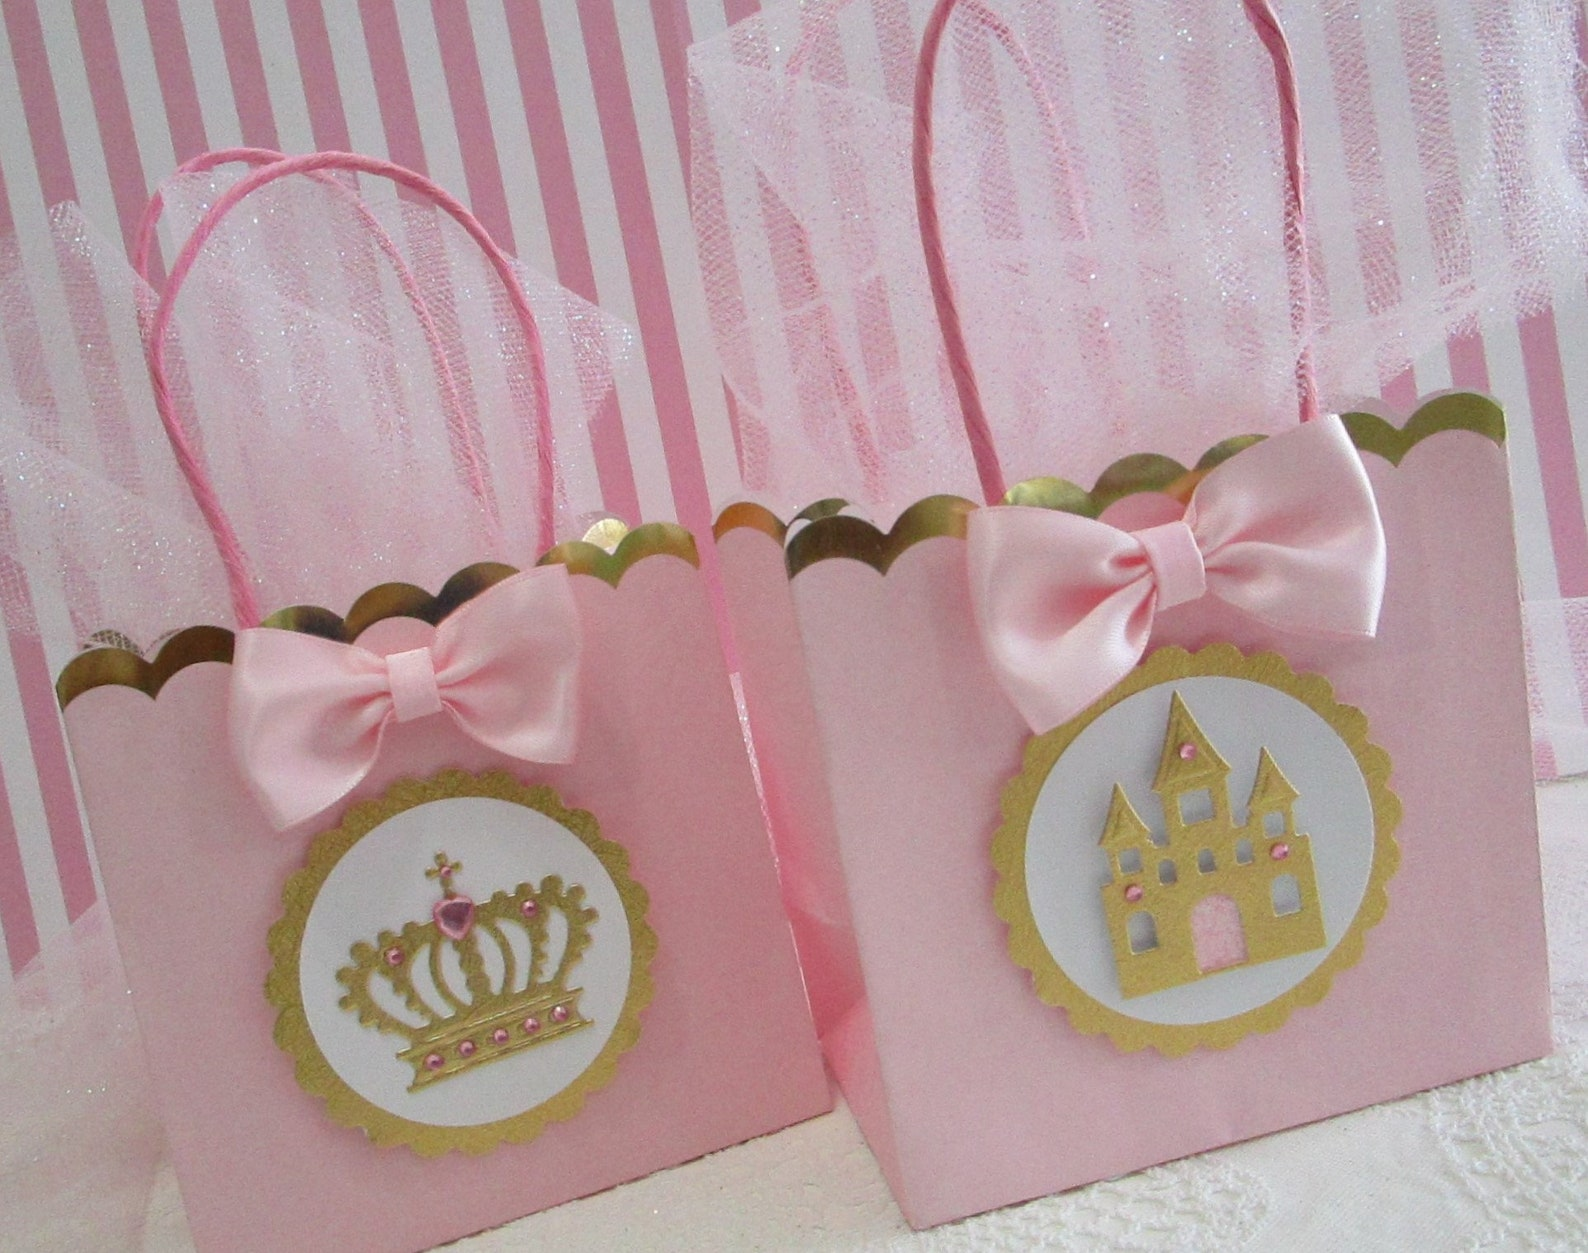 Princess Party Favor Bags for 10 Guests